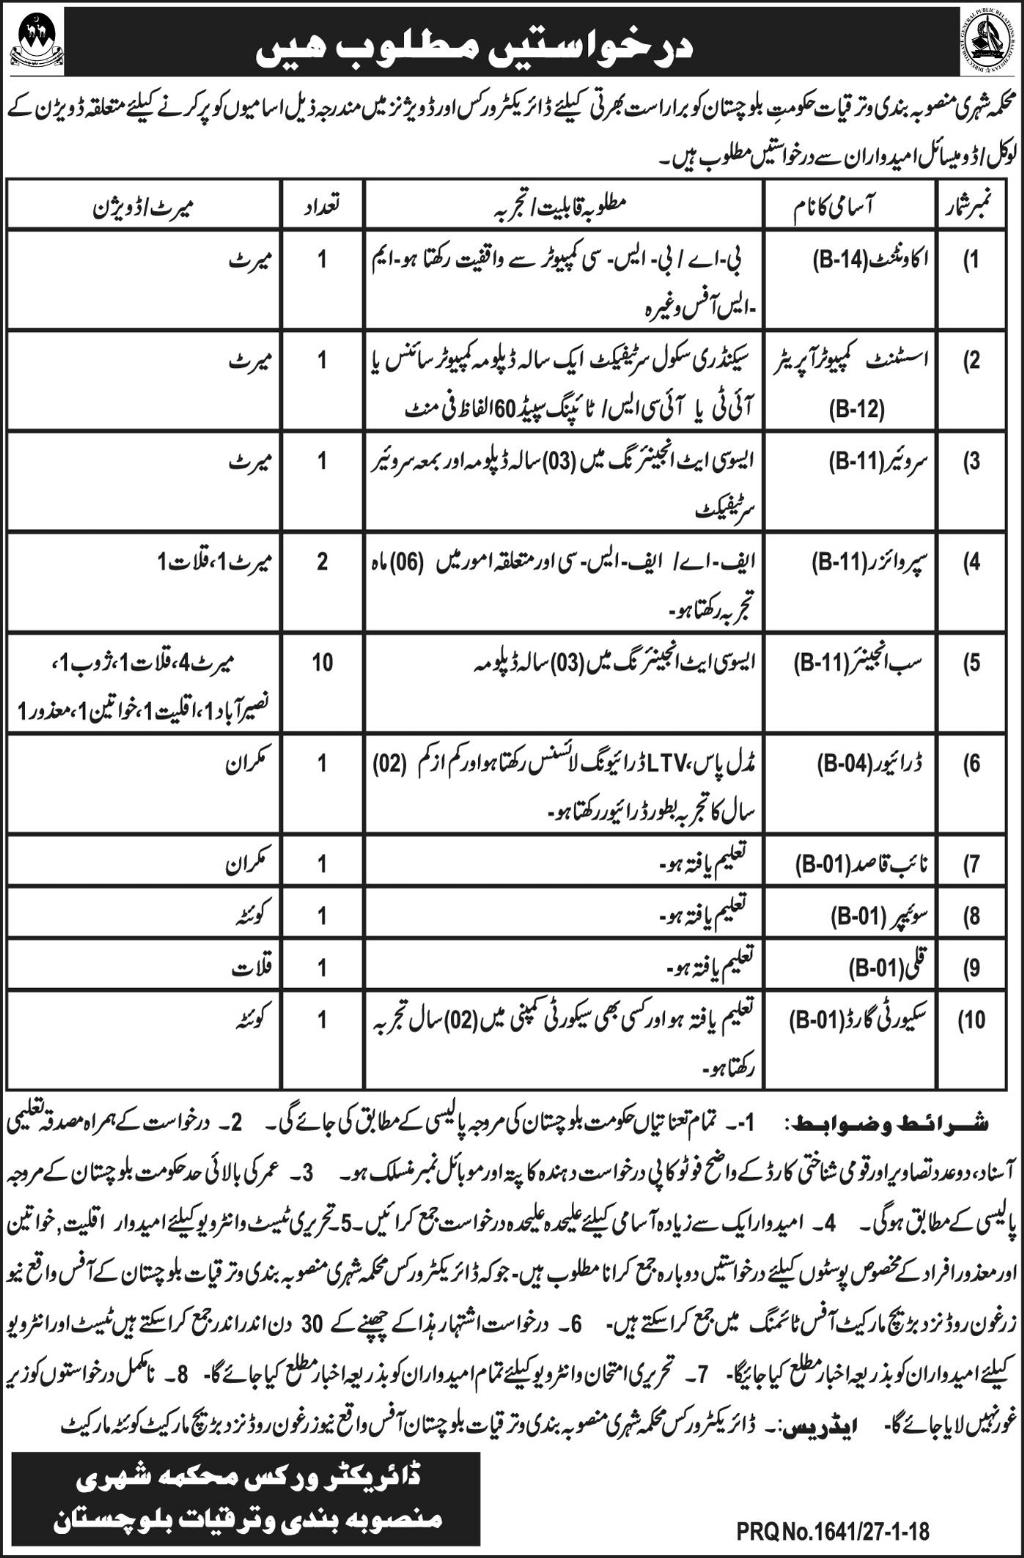 Jobs in Urban Planning and Development Department 28 Jan 2018